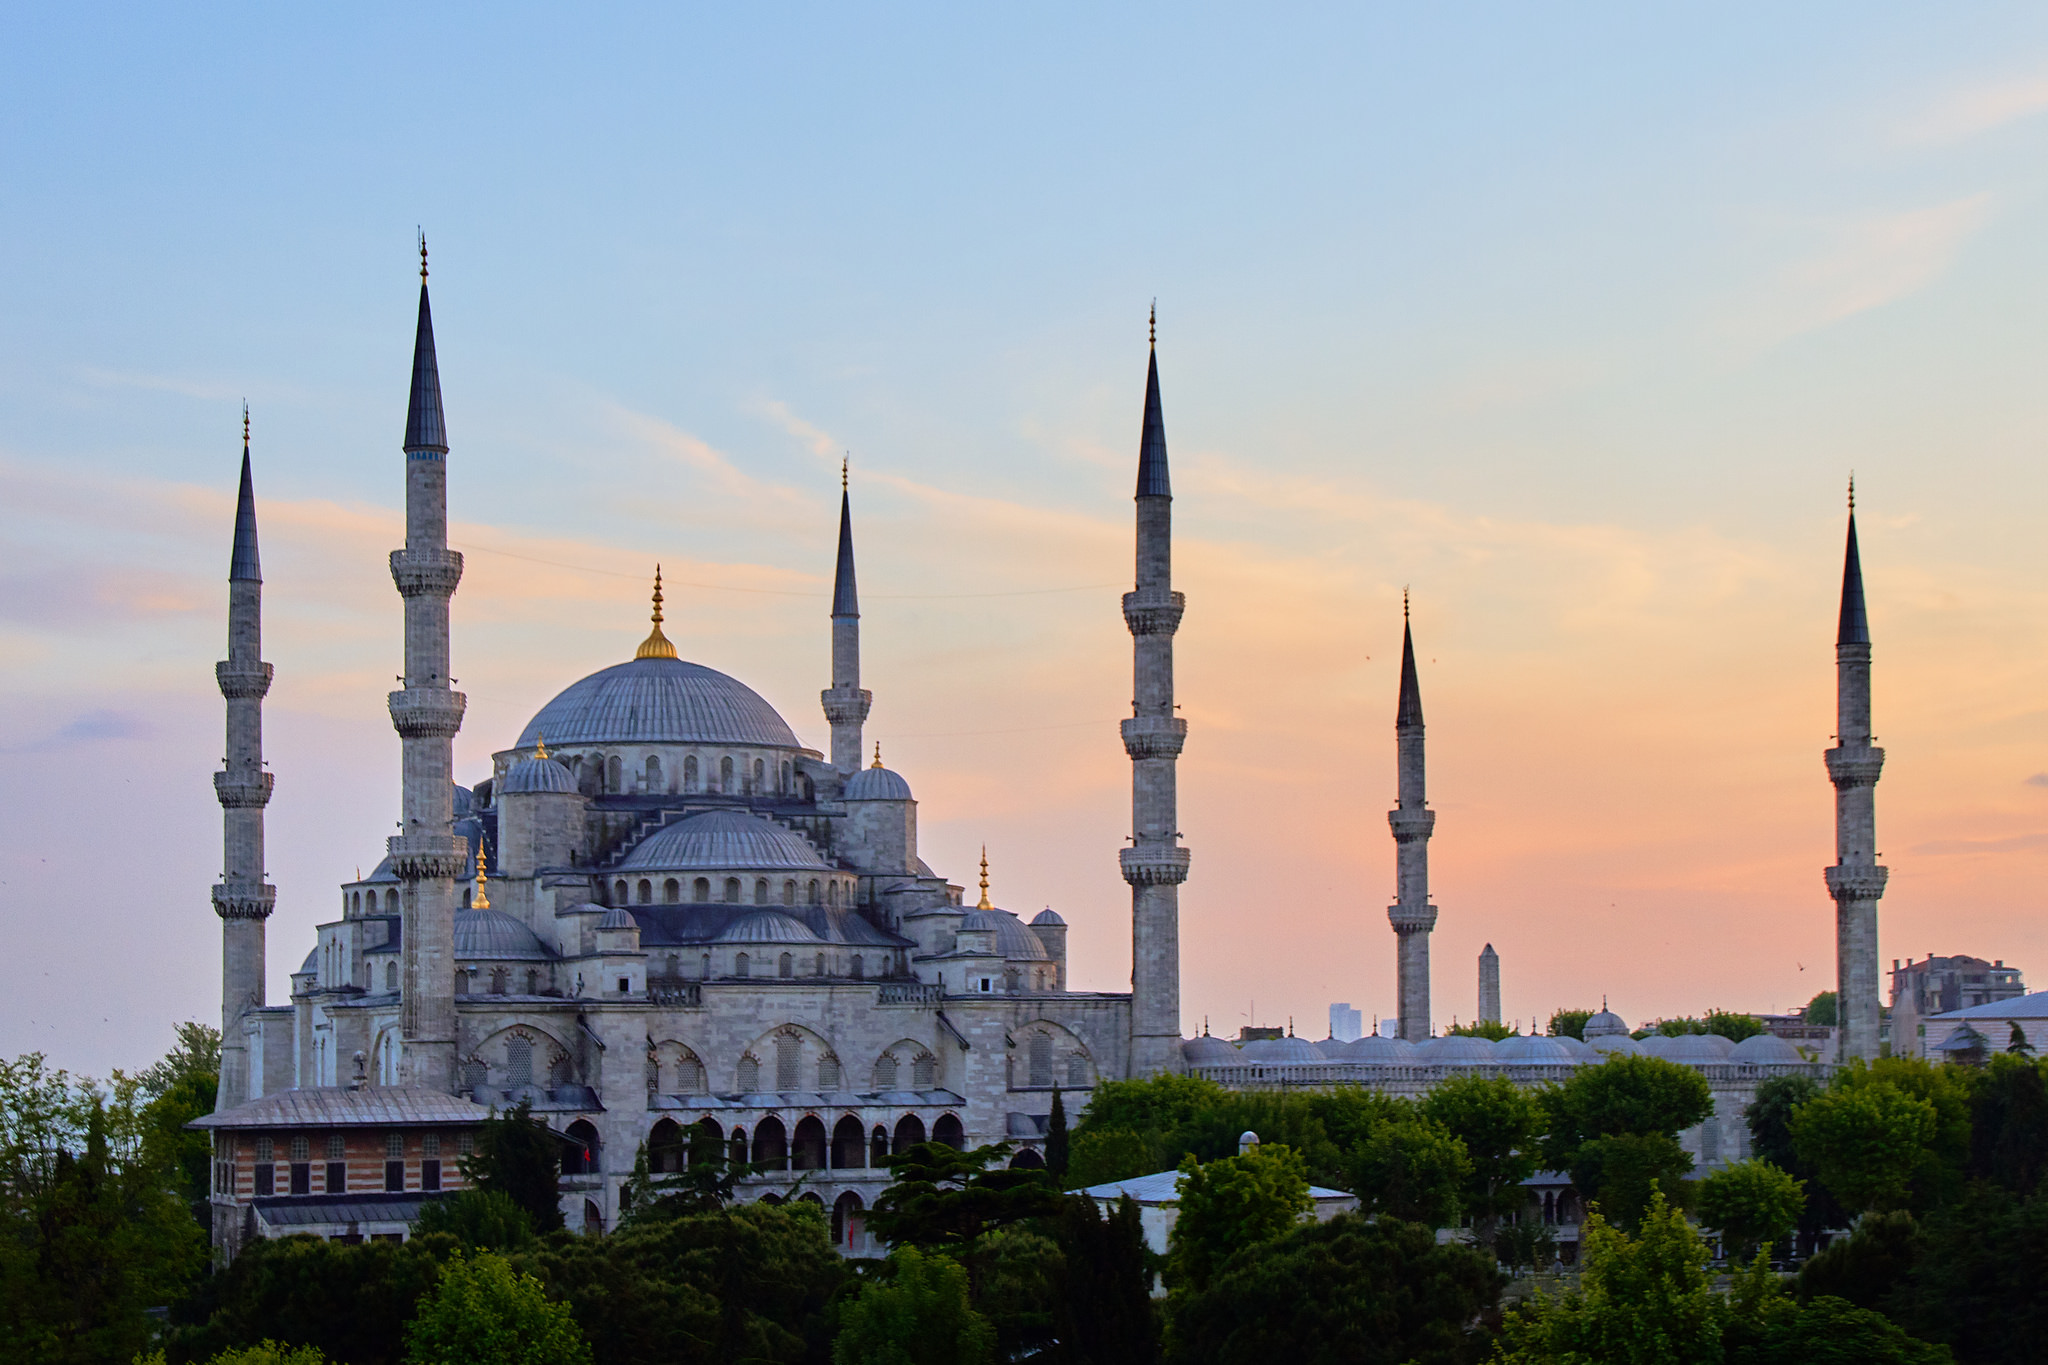 Where to Travel Based on Your Zodiac: Capricorn - Istanbul, Turkey